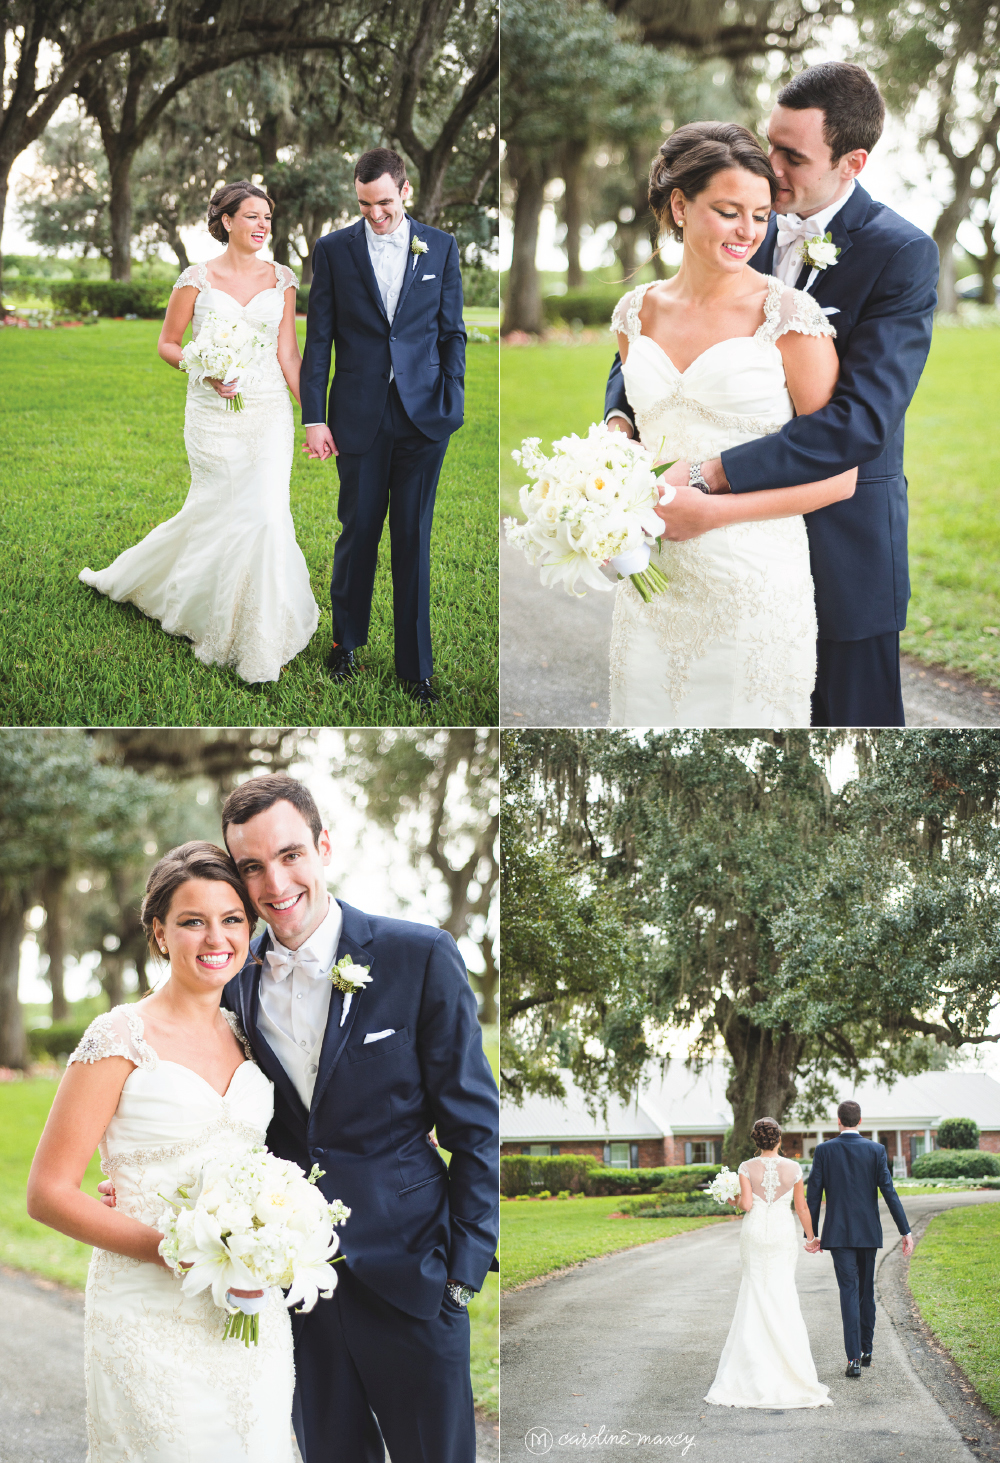 Shelby and David tie the knot! Wauchula, FL Wedding Photography with Caroline Maxcy Photography.